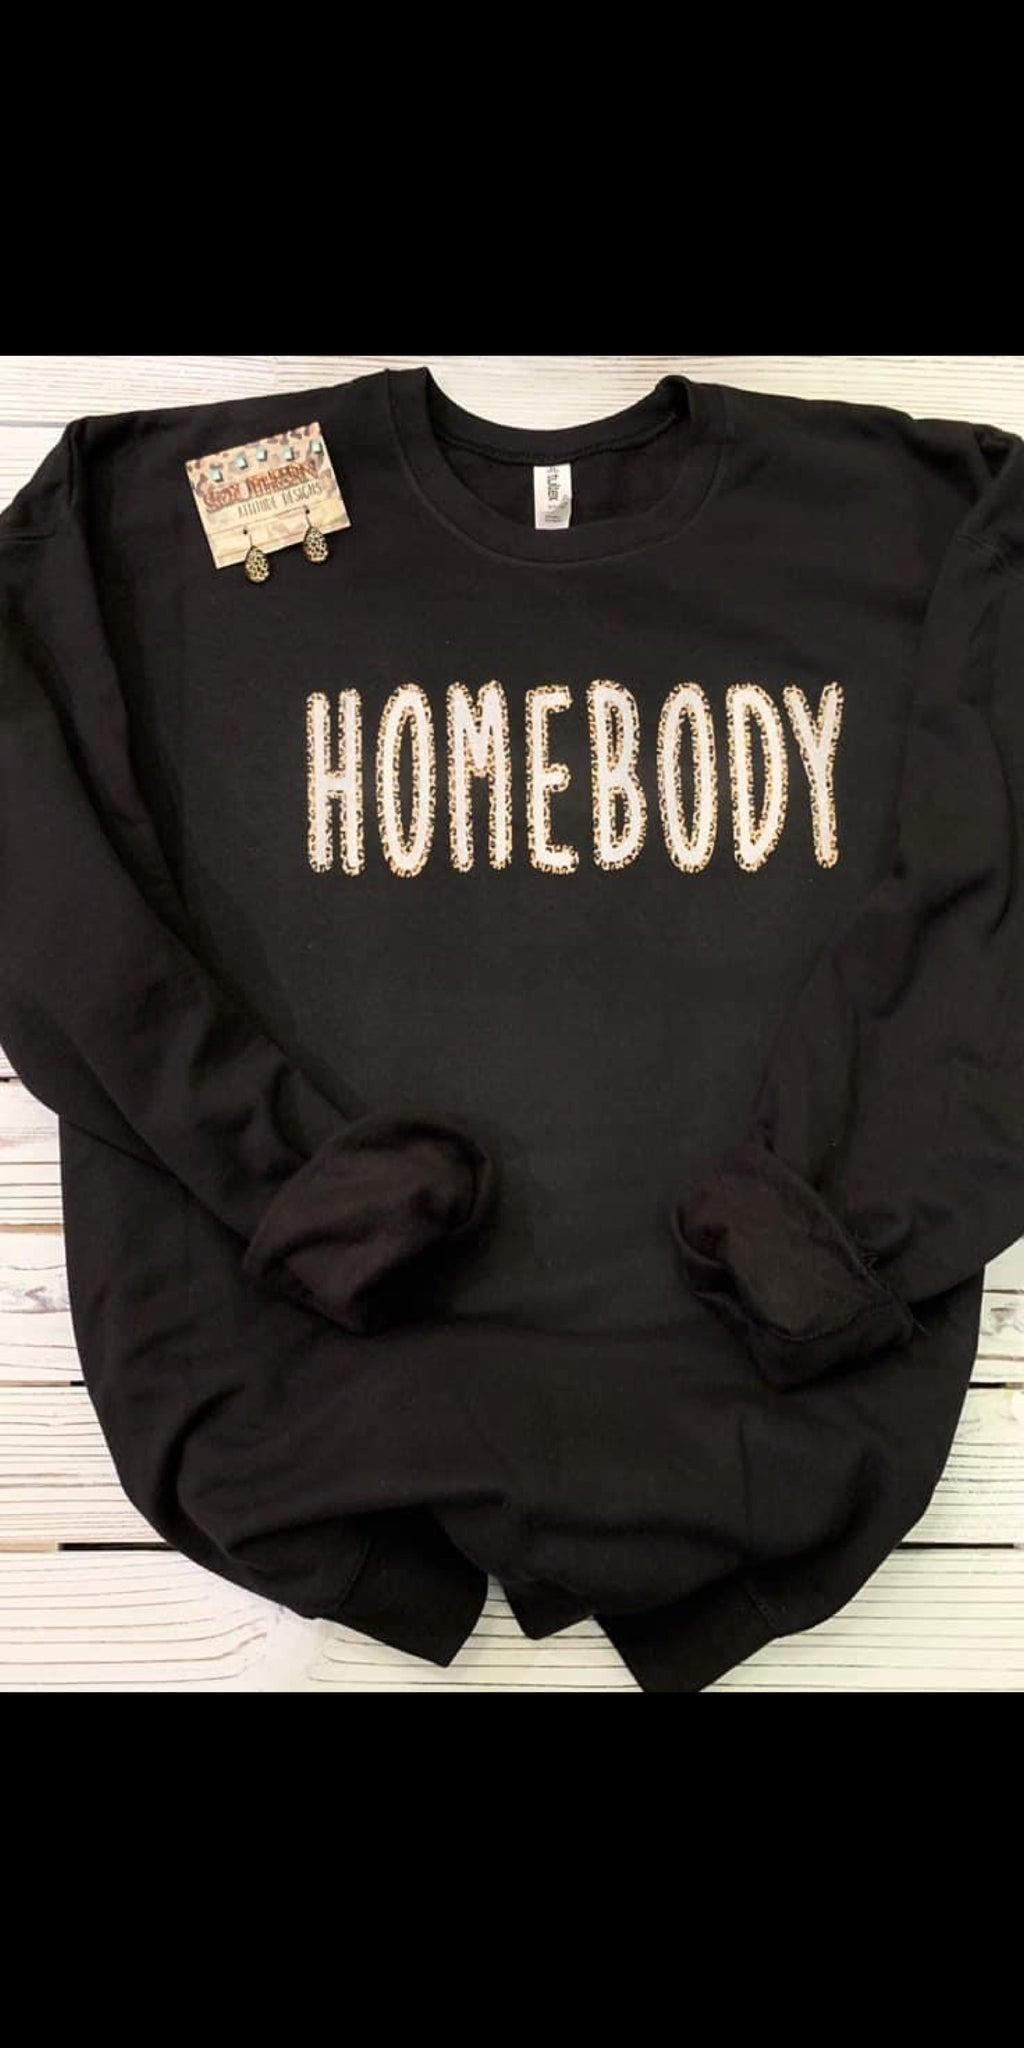 Homebody Leopard Sweatshirt - Also in Plus Size